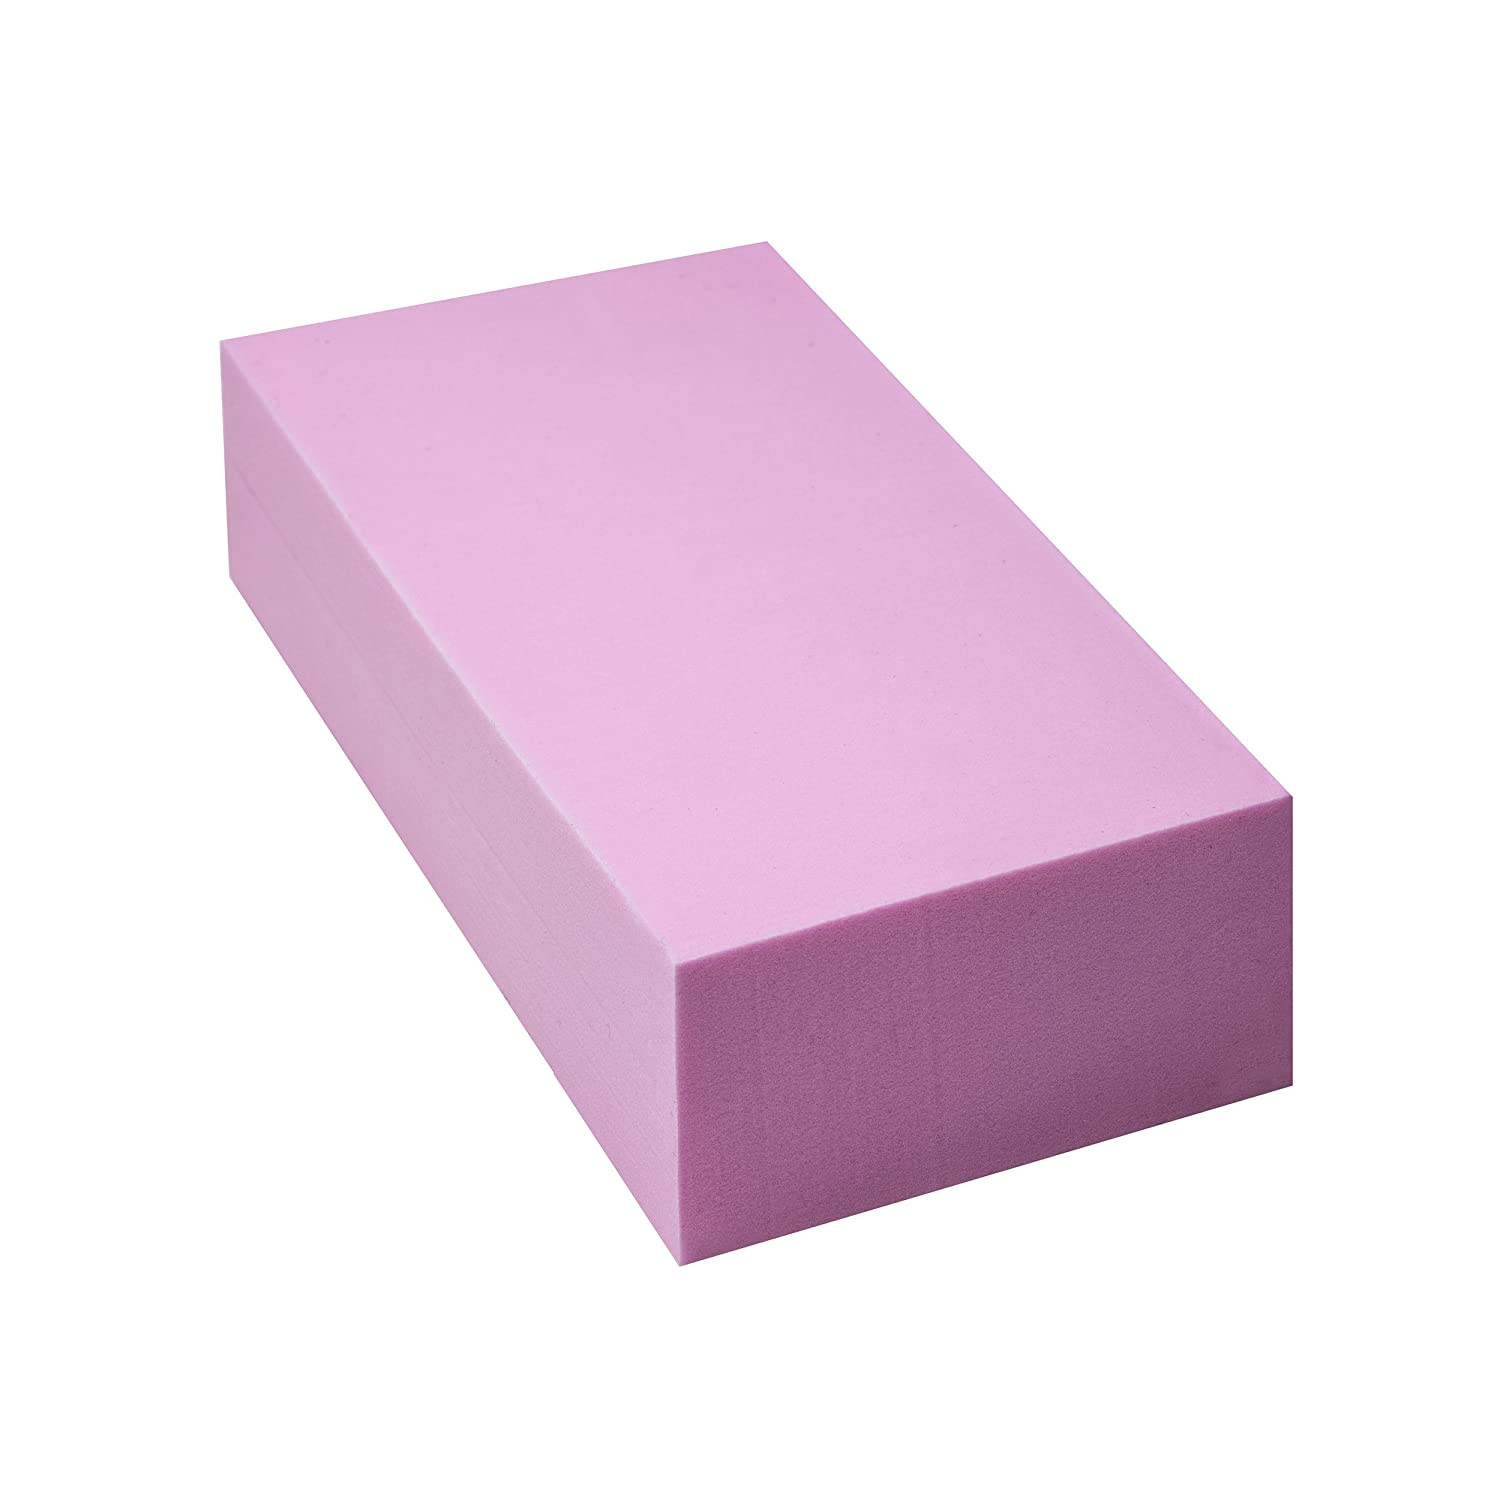 SAUGWUNDER Cleaning Sponge Super Absorbent Water Durable ^~ You Know 17.5×7.5×3.5 cm[6.9 x 3 x 1.38 inches] Use for Household Clean Cars/Boats The dust and Dirt on Furnitures,Bathtubs&etc. (Pink)